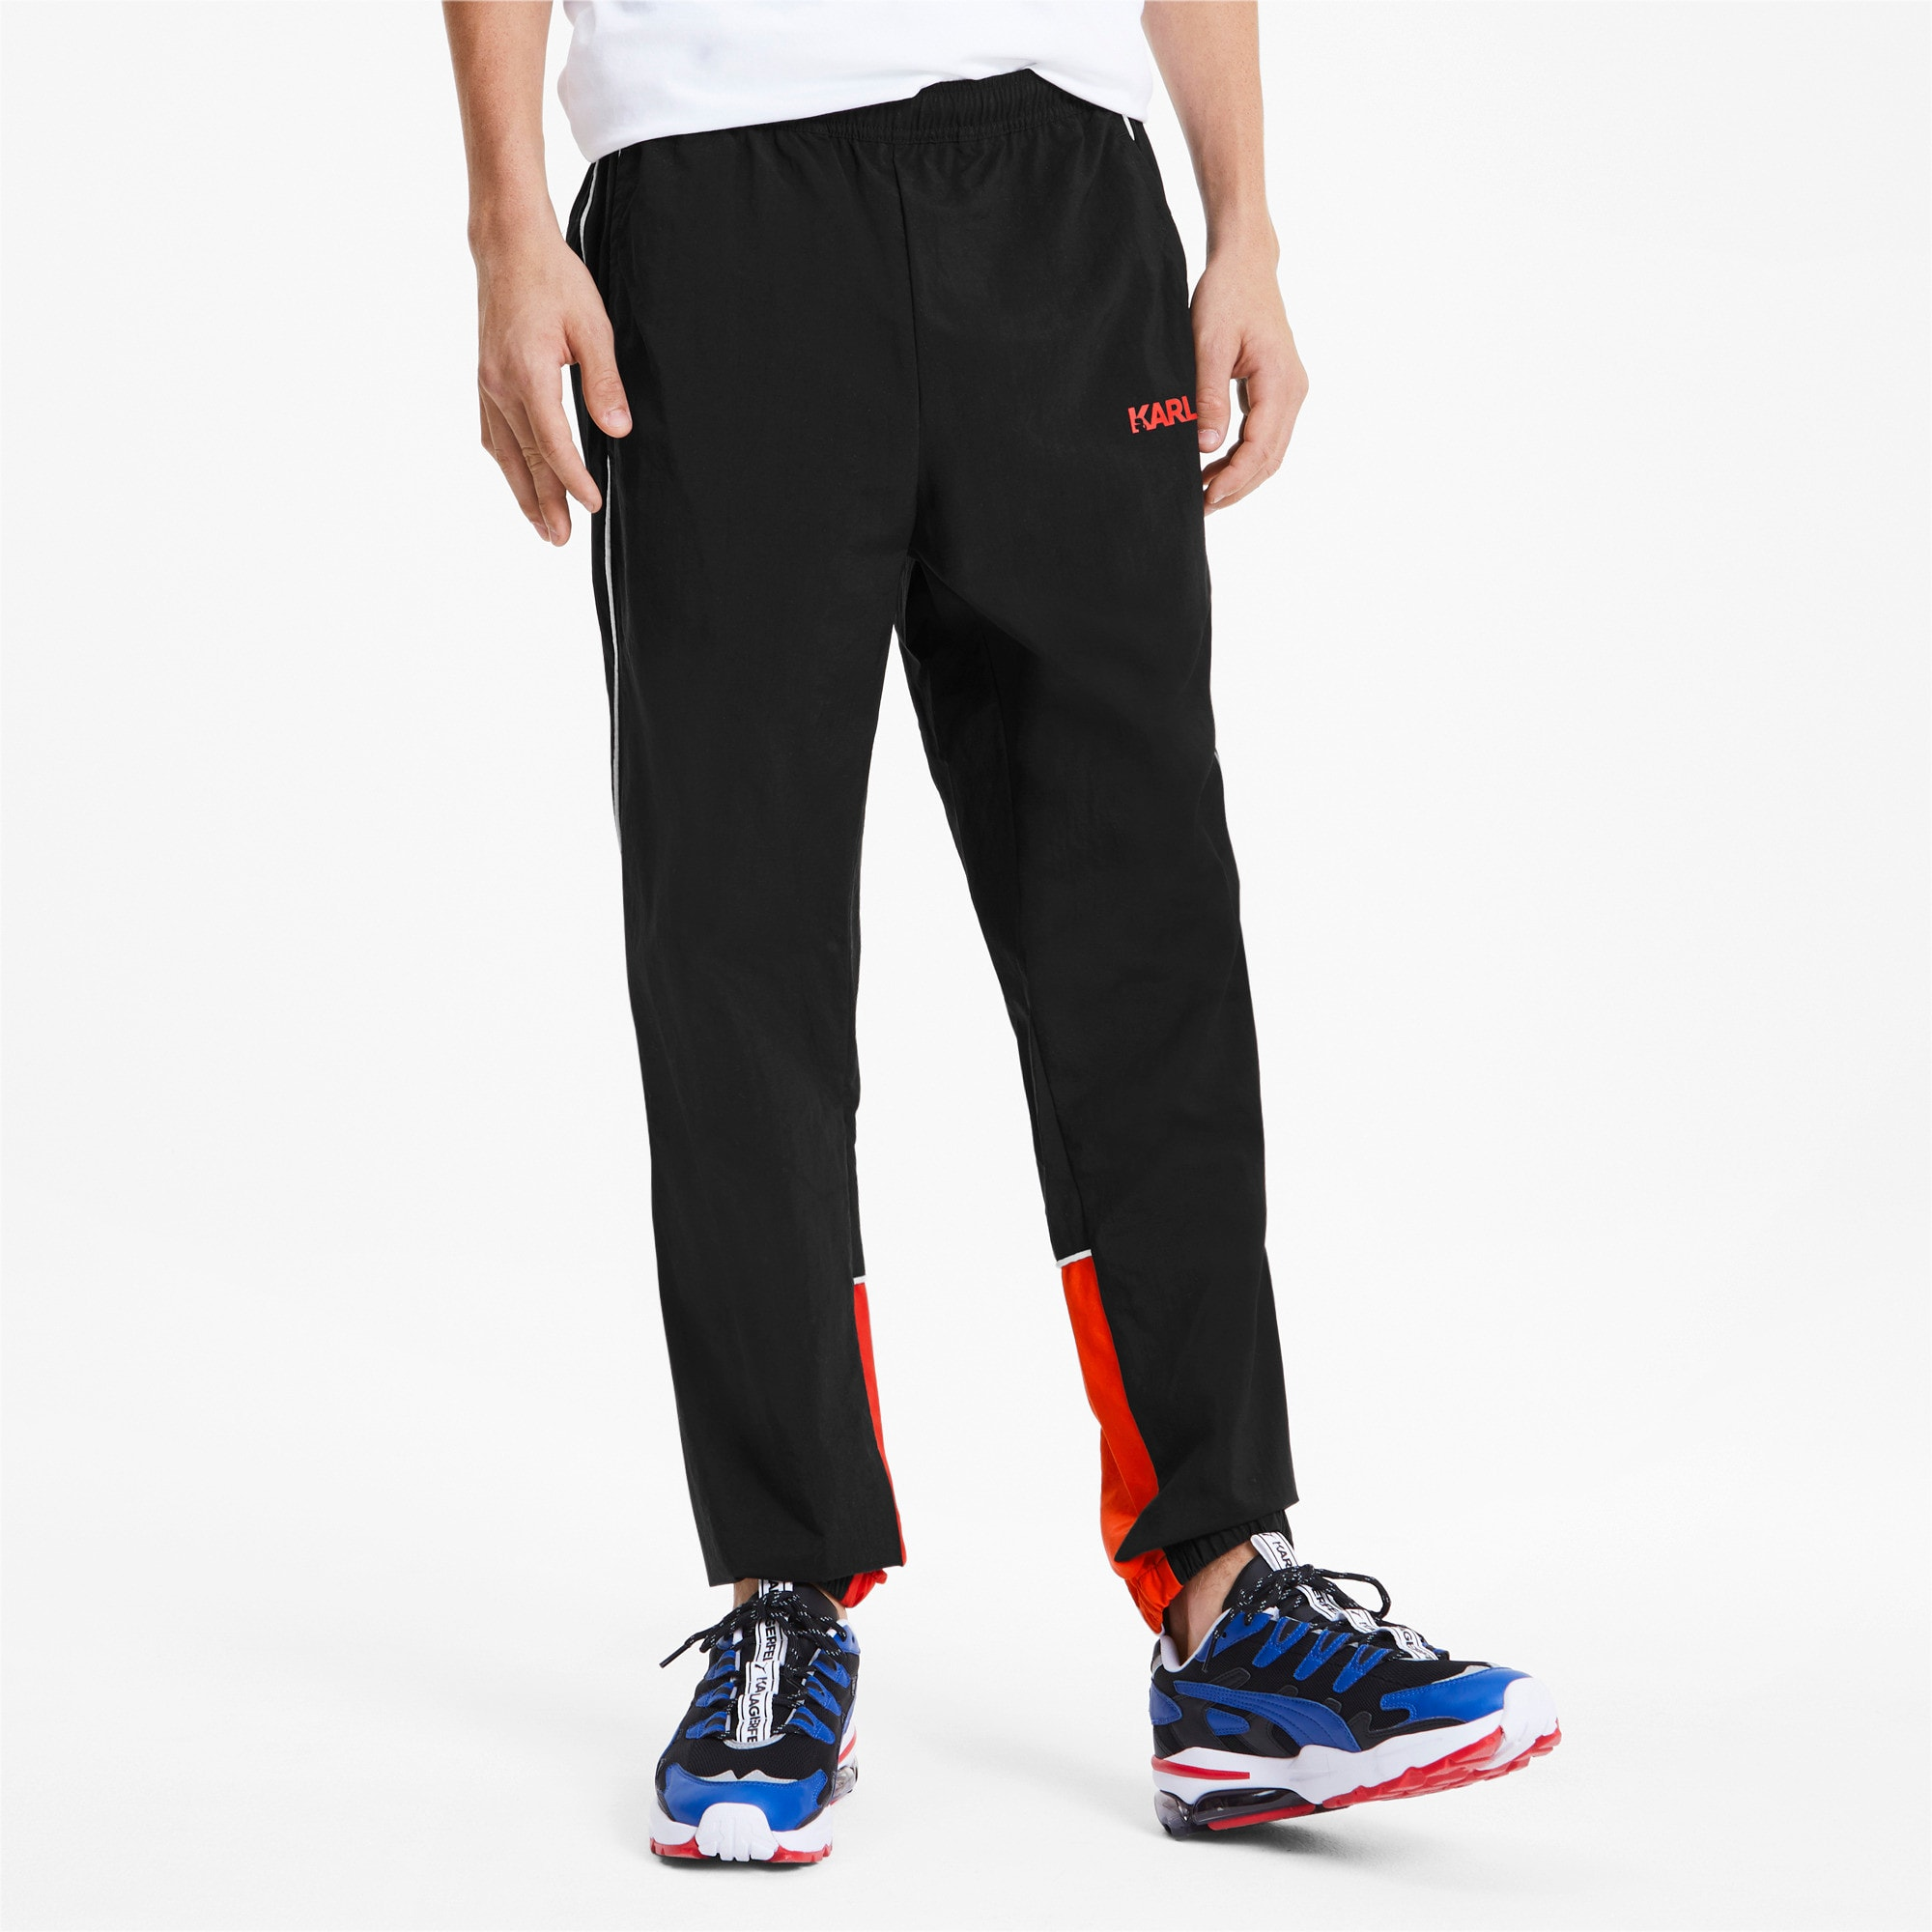 Thumbnail 1 of PUMA x KARL LAGERFELD Knitted Men's Track Pants, Puma Black, medium